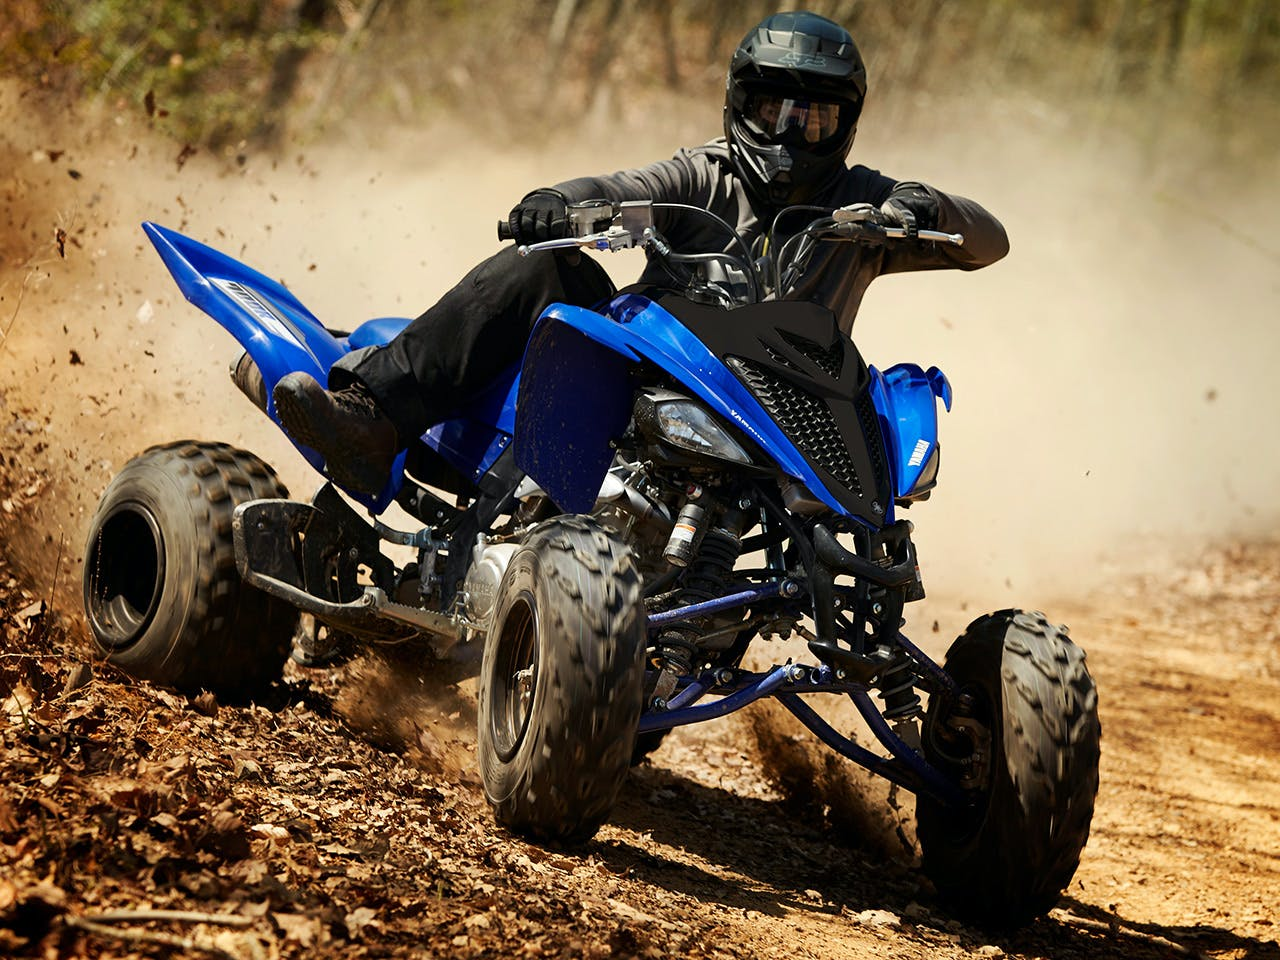 Yamaha YFM700R in team yamaha blue colour, being ridden off-track